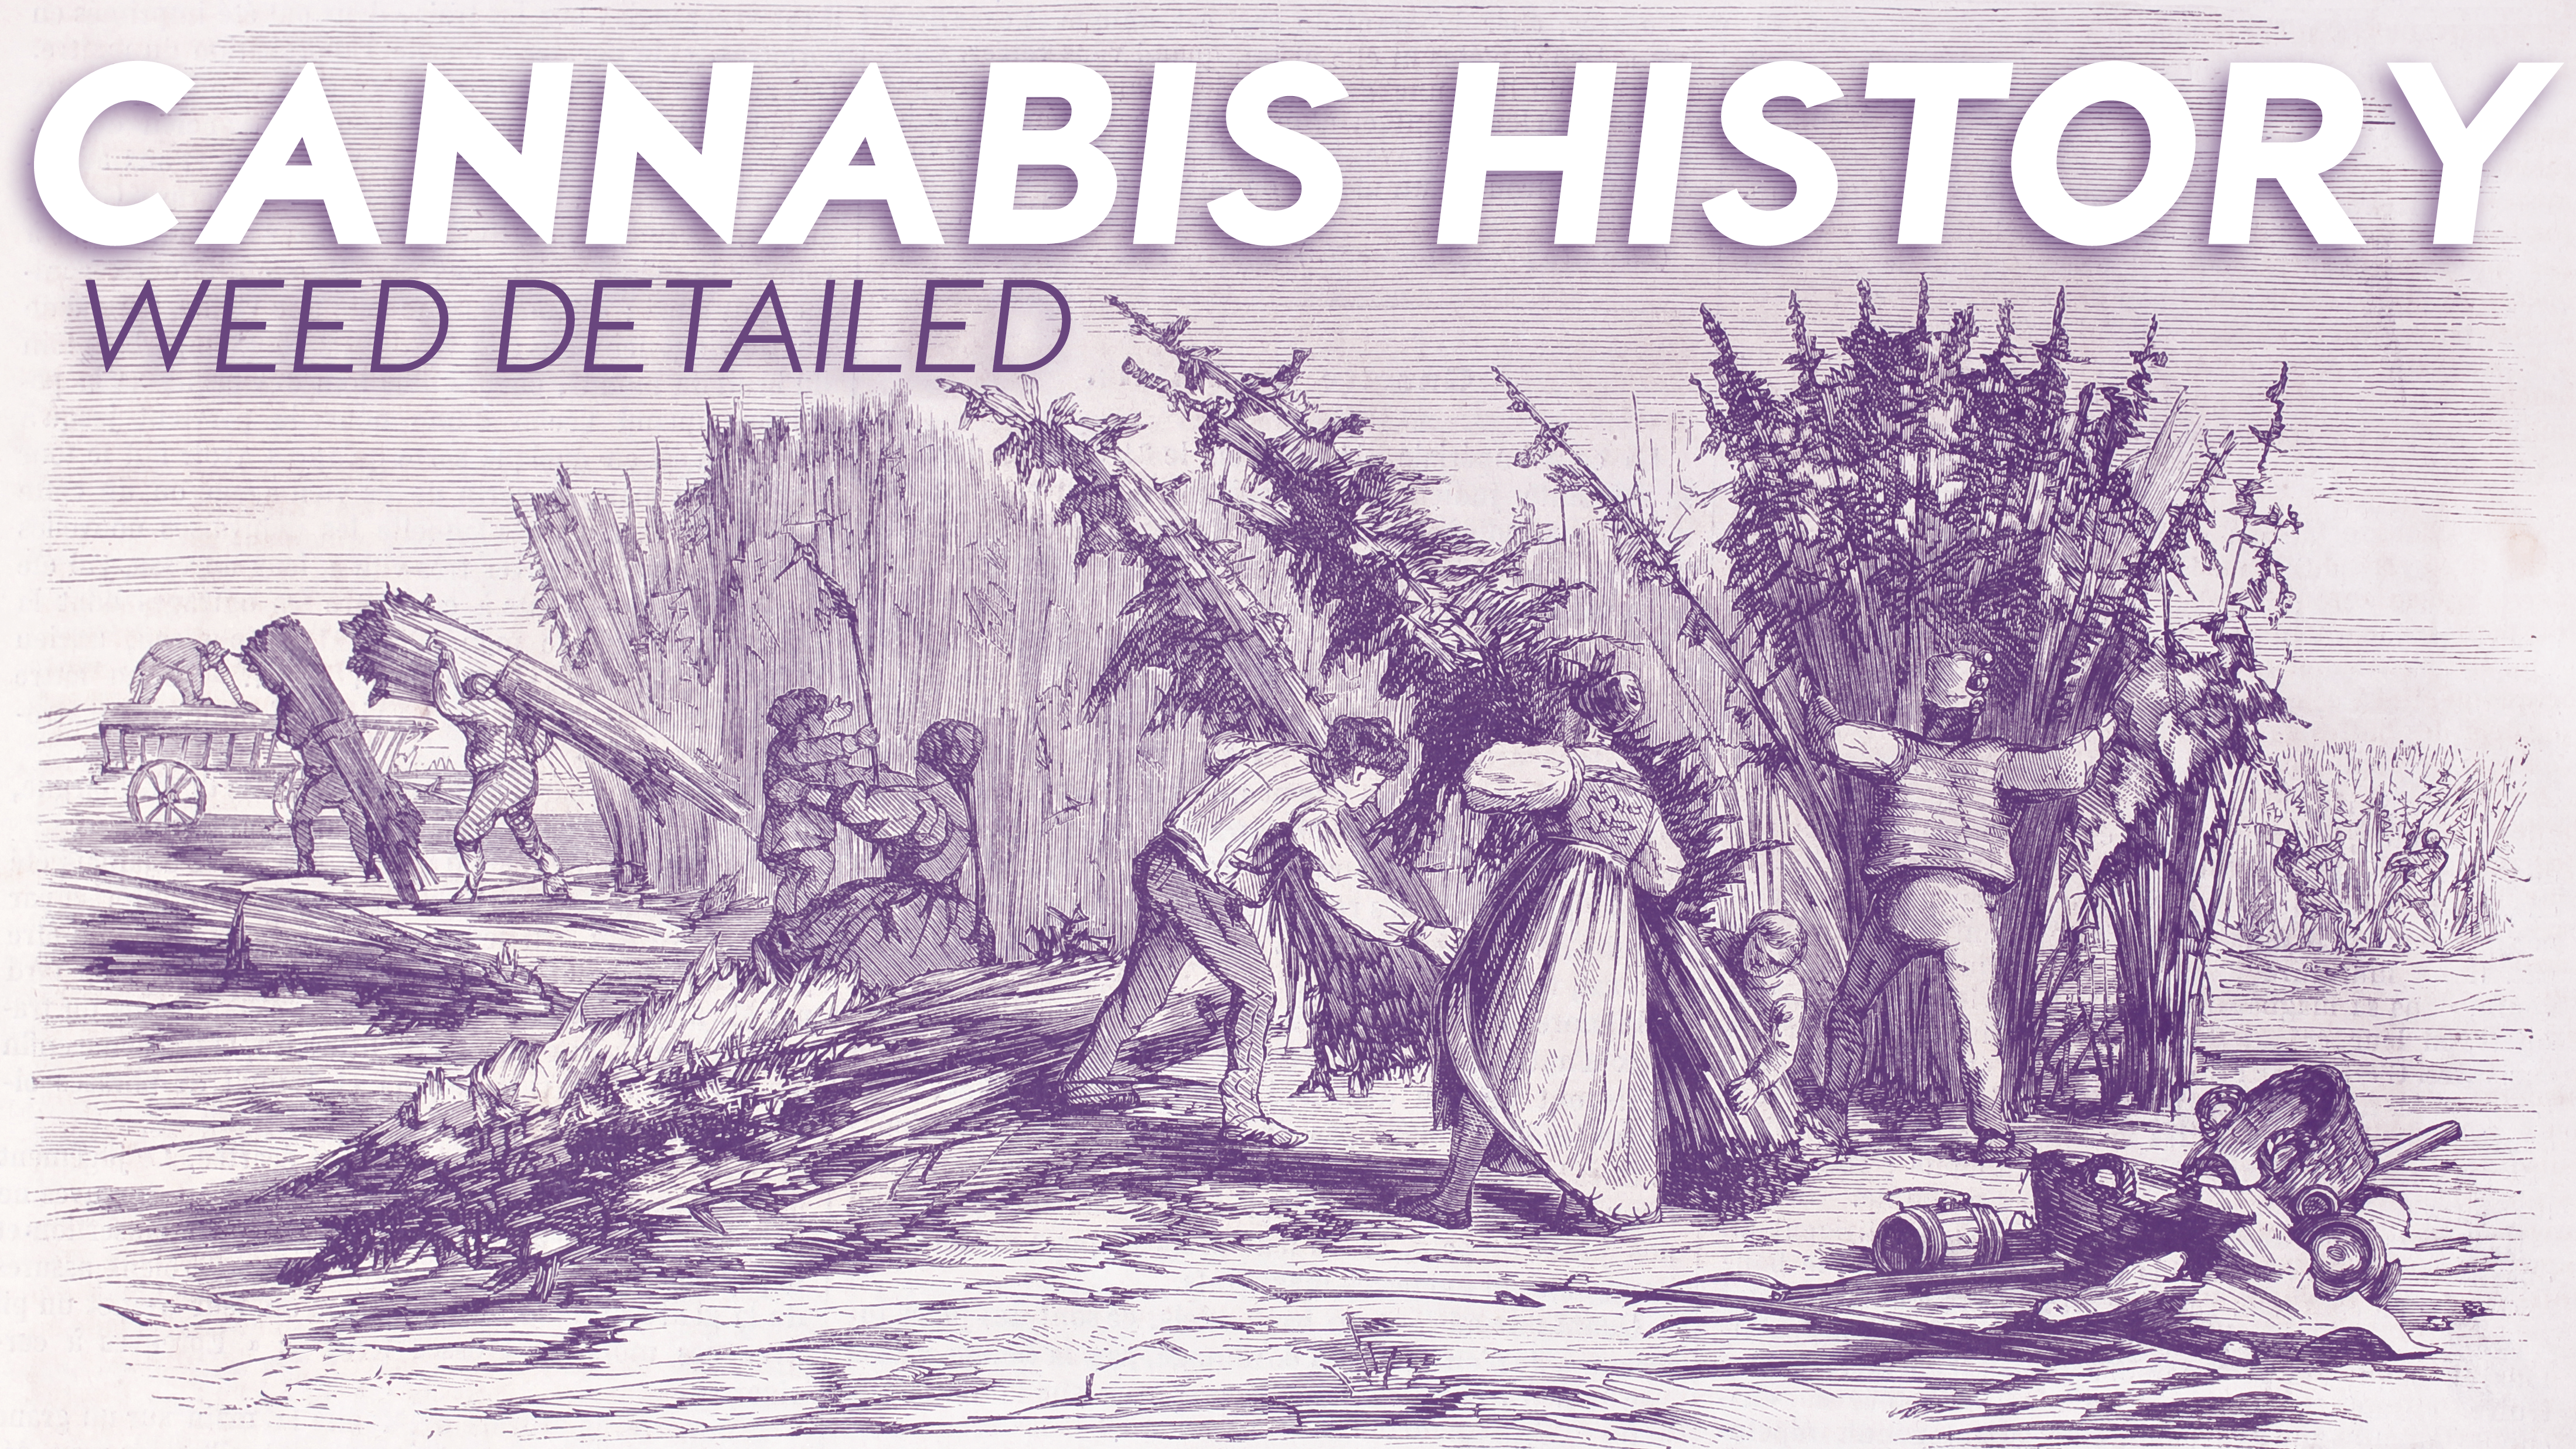 Cannabis History: Weed Detailed